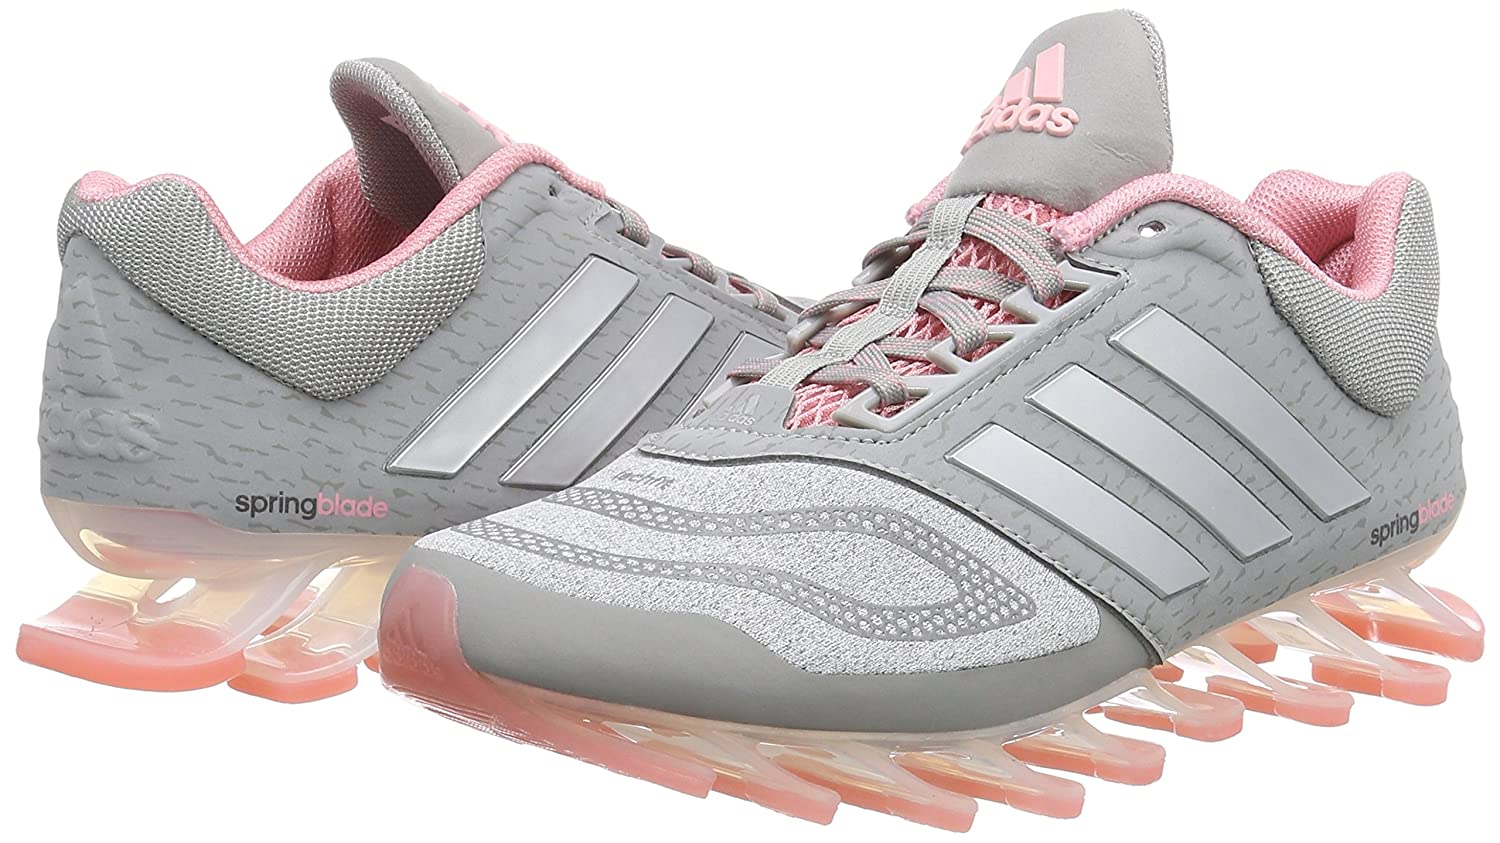 047b5a154682 adidas Springblade Drive 2 Women s Running Shoes - 3.5  Amazon.co.uk  Shoes    Bags